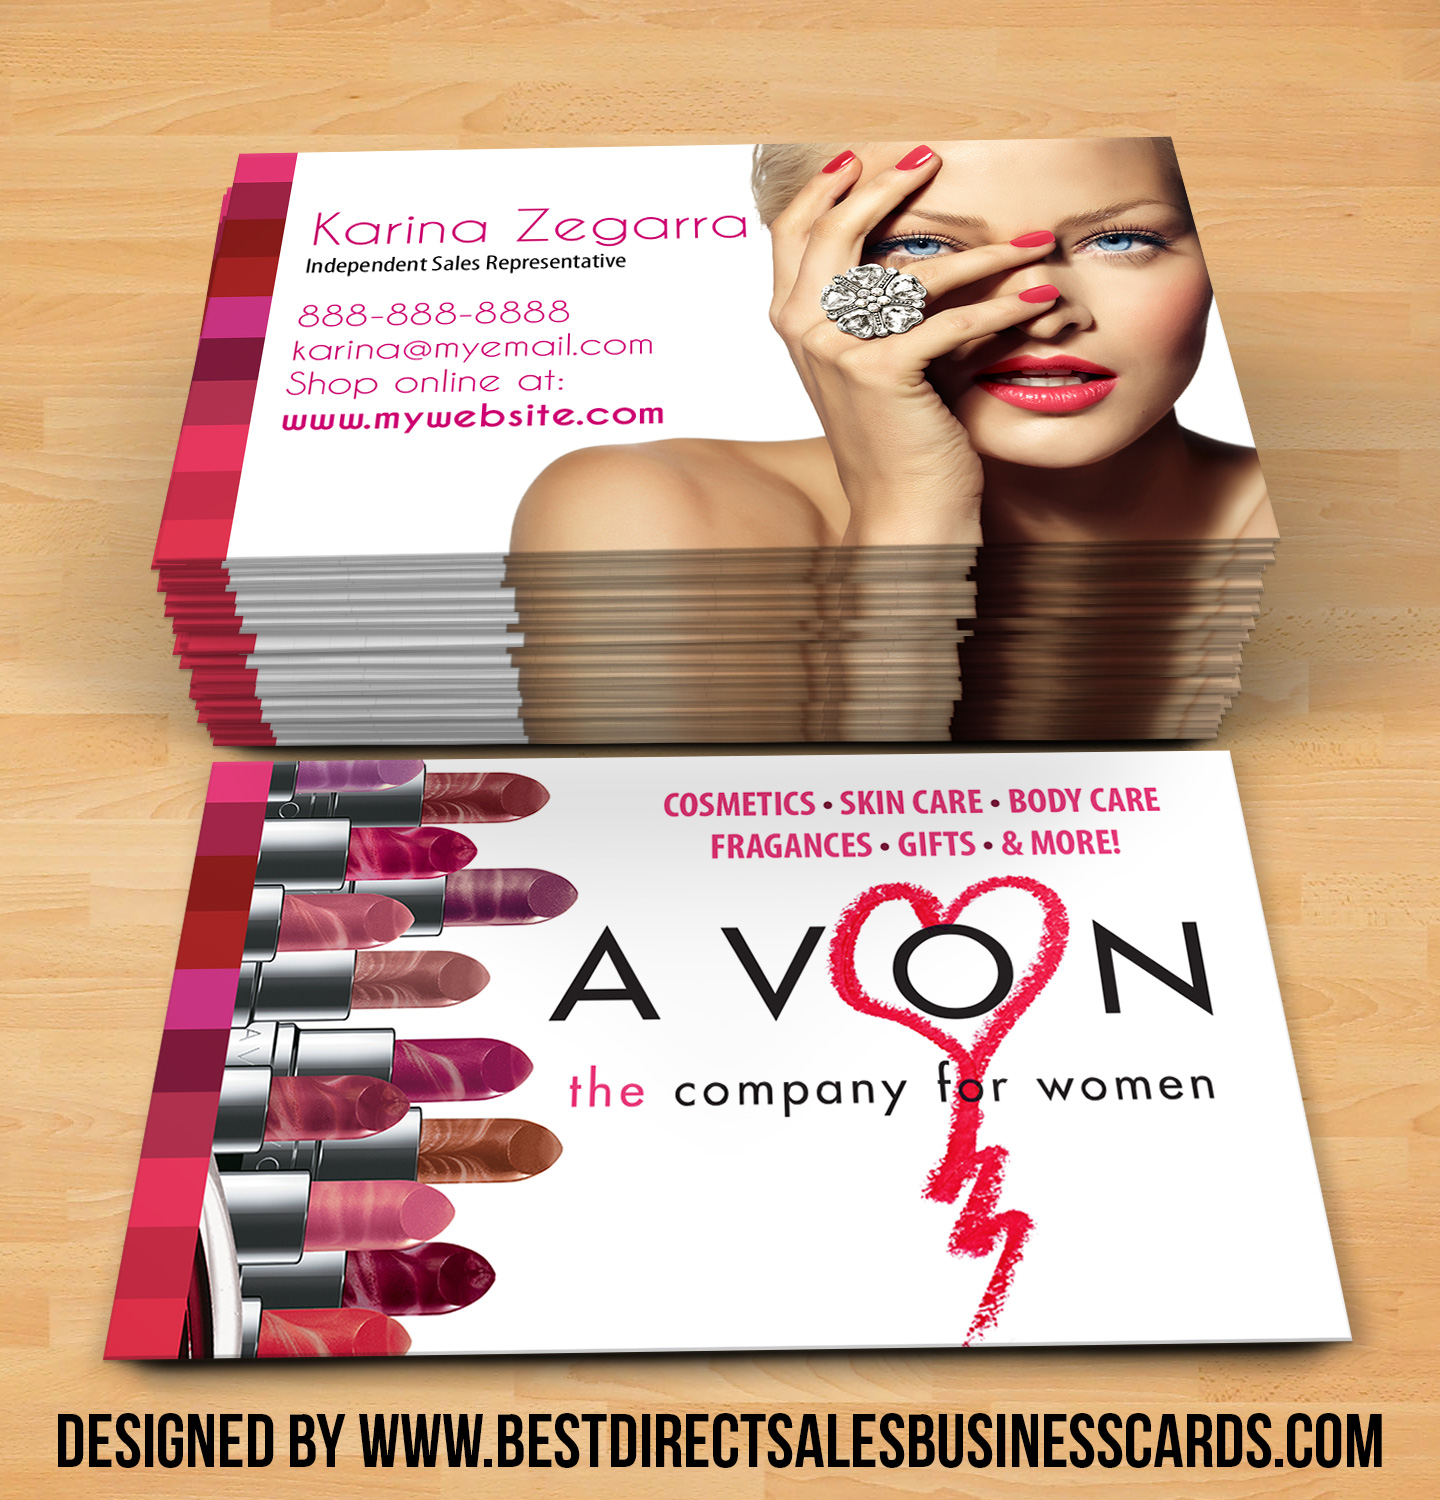 Avon Business Cards style 3 · KZ Creative Services · Online Store ...